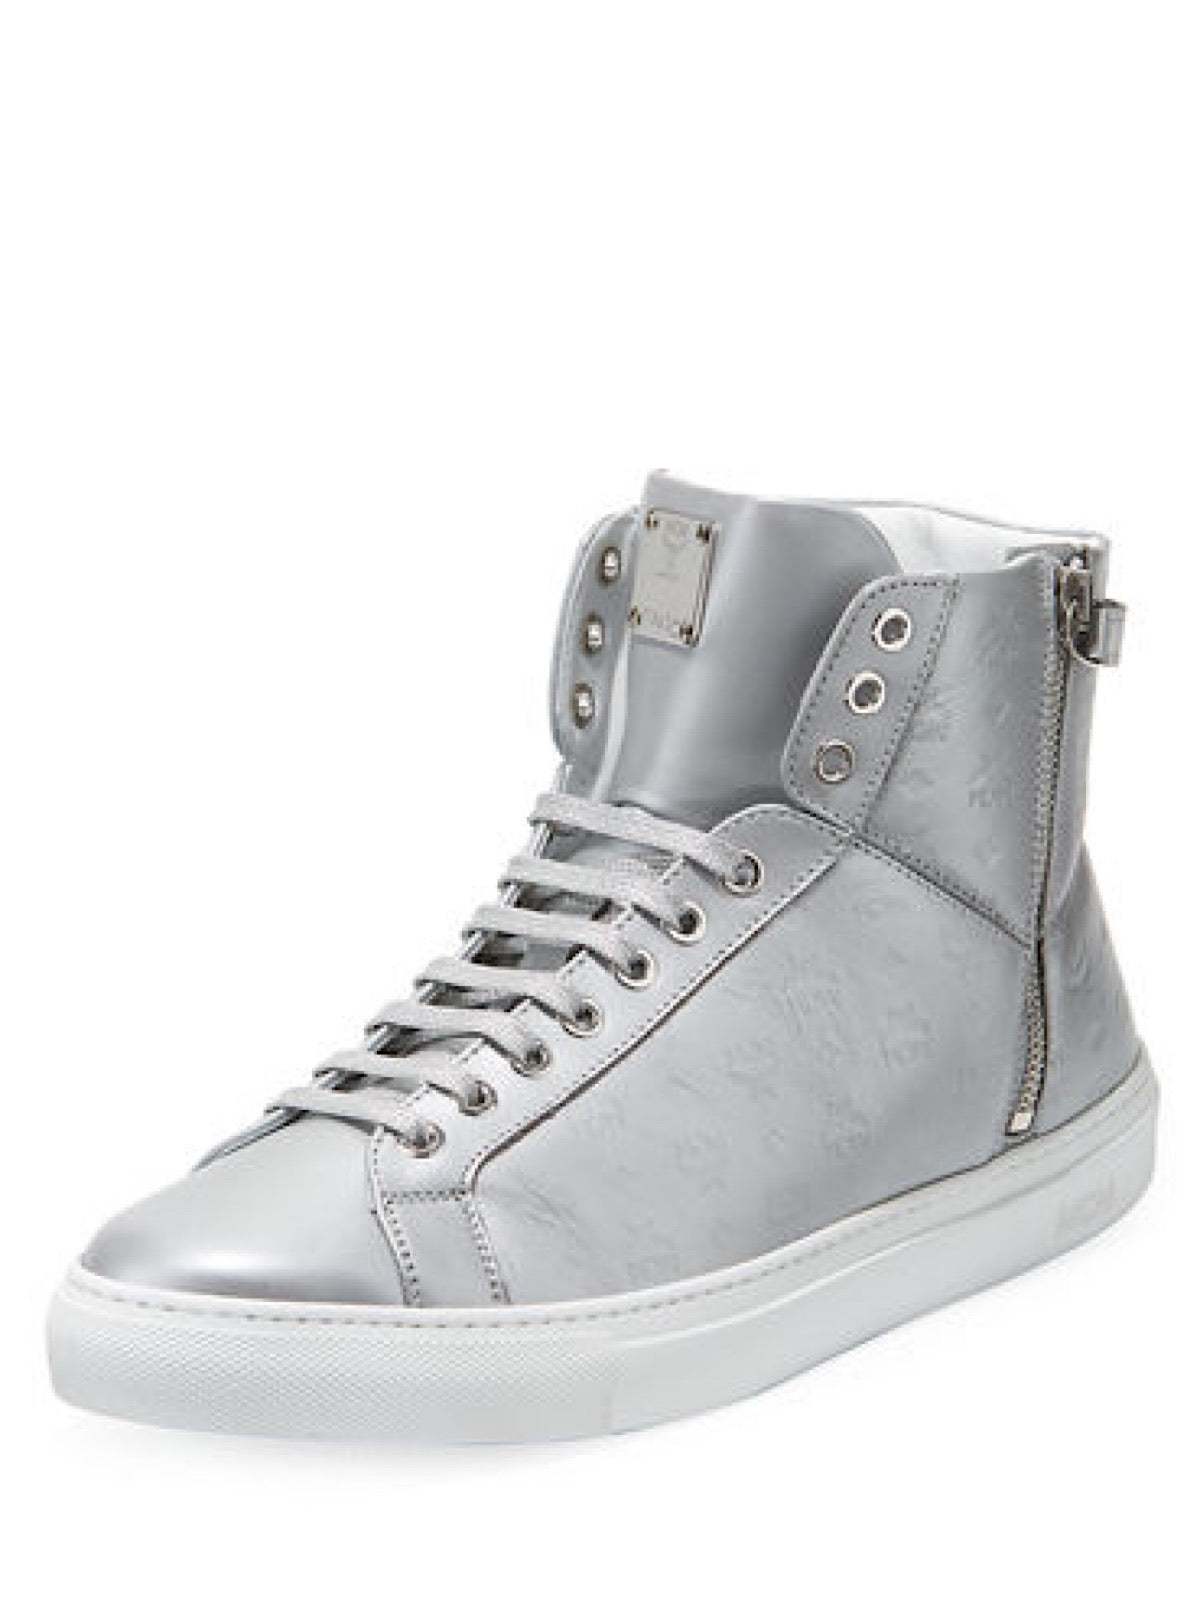 MCM Shoes - Visetos High Top - Silver